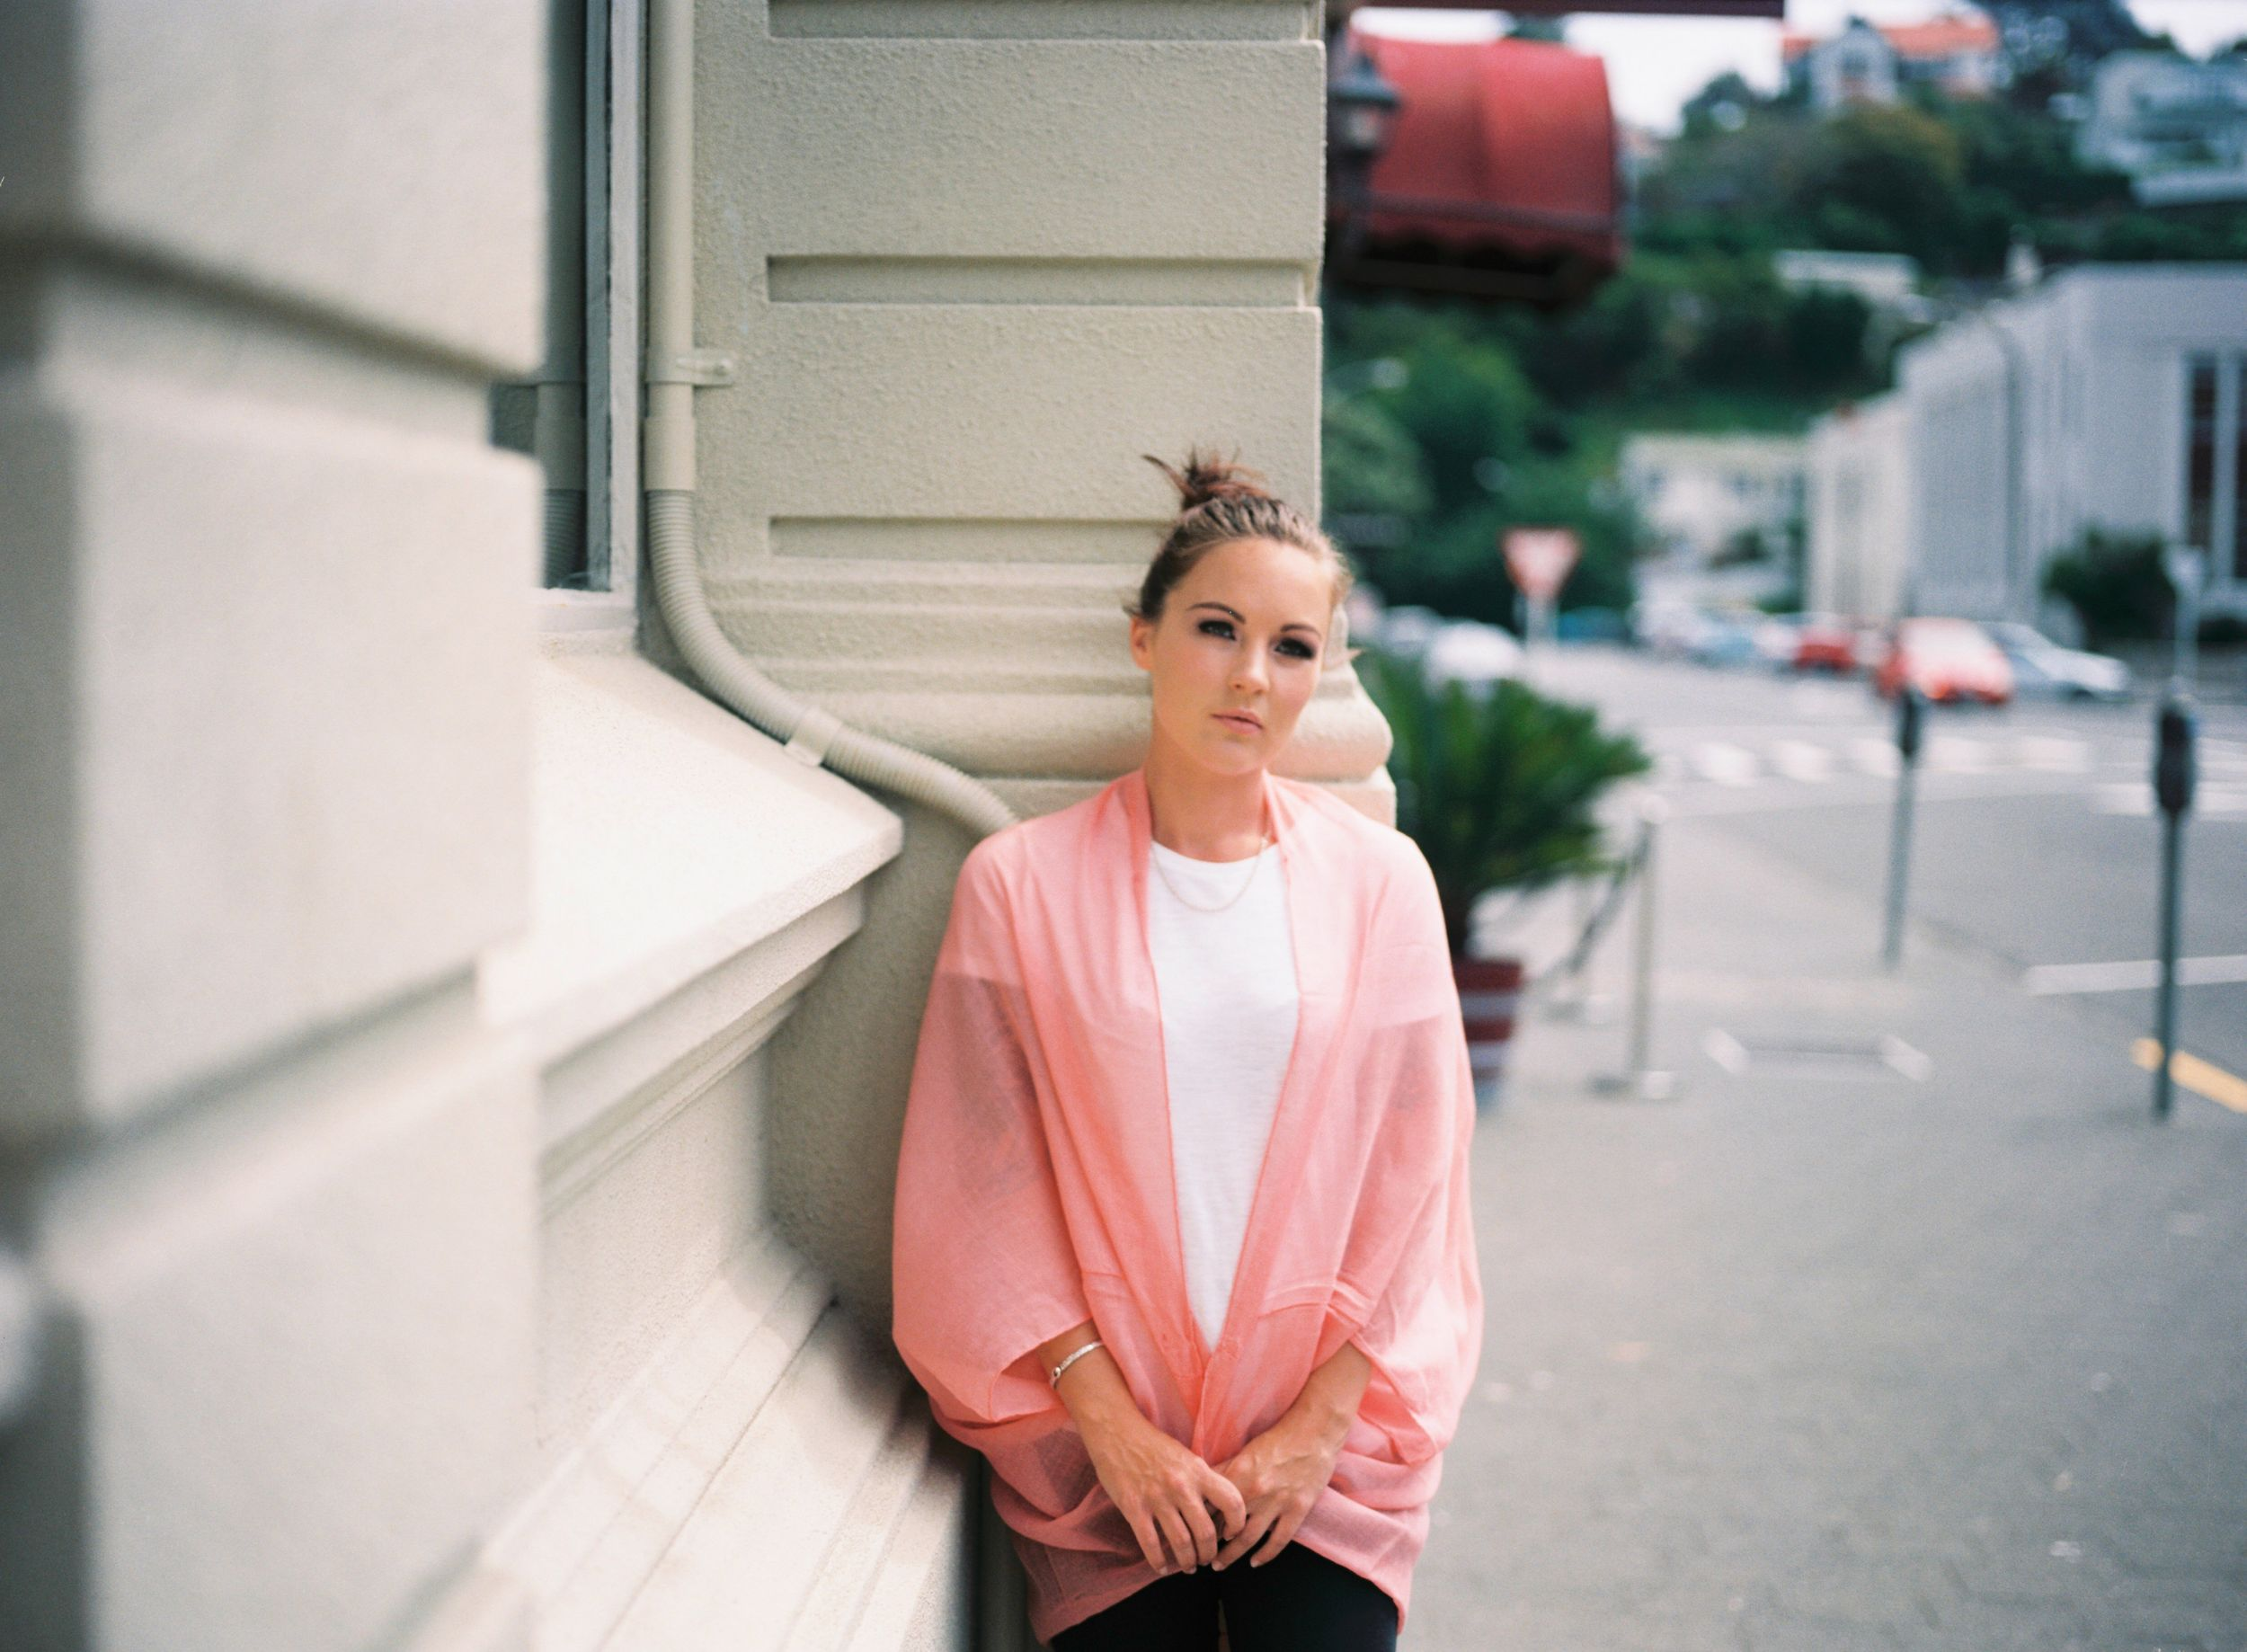 Mamiya 645, film, film photographer, Hawke's Bay Photographer, pastel, female model, portrait